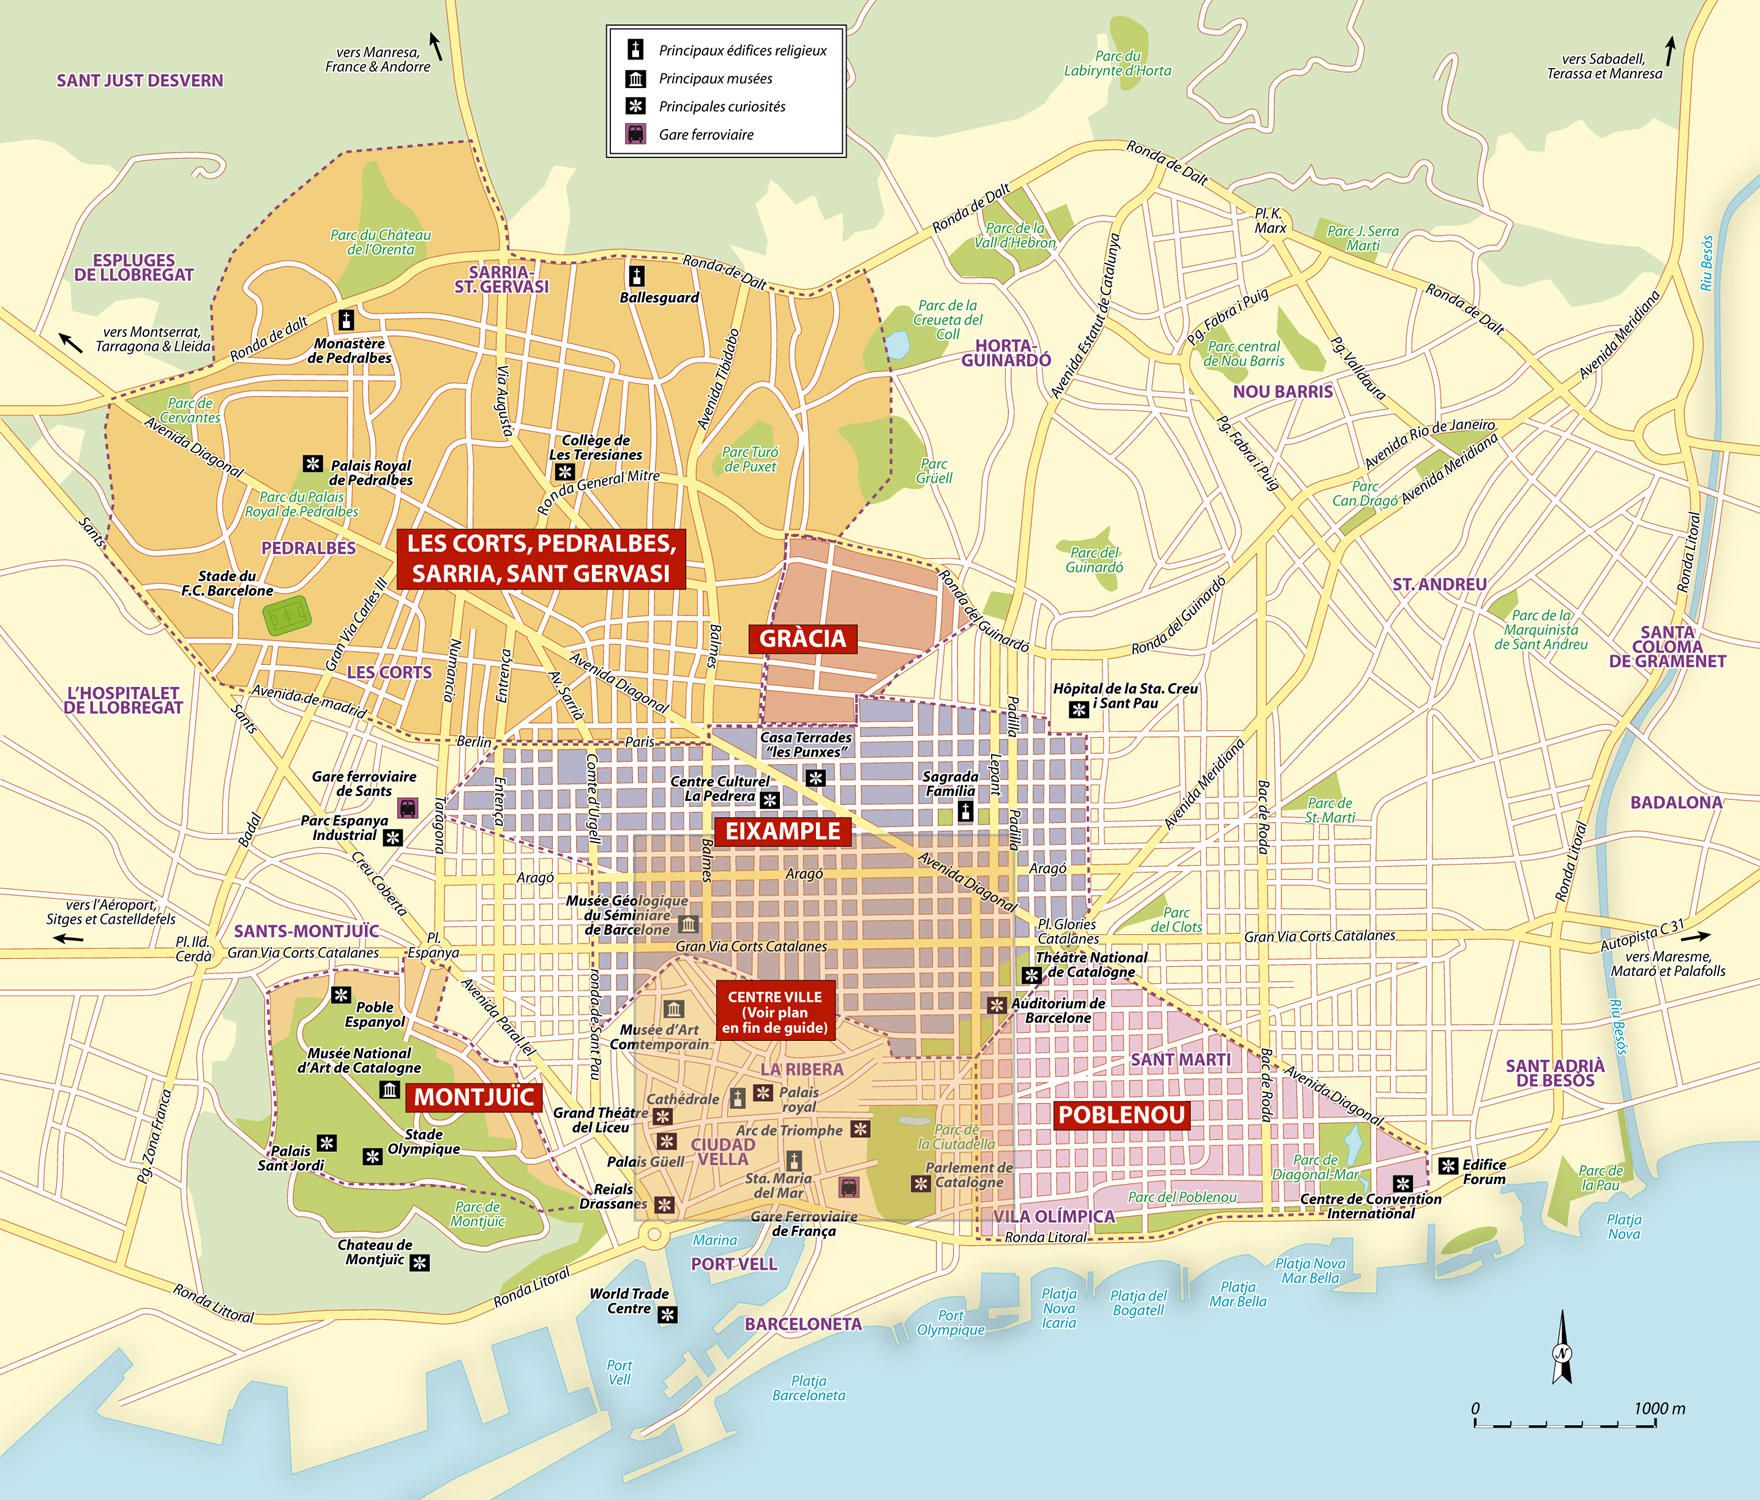 Bus Bordeaux Barcelone Carte De Barcelone Cartes And Plans De Barcelone Sites